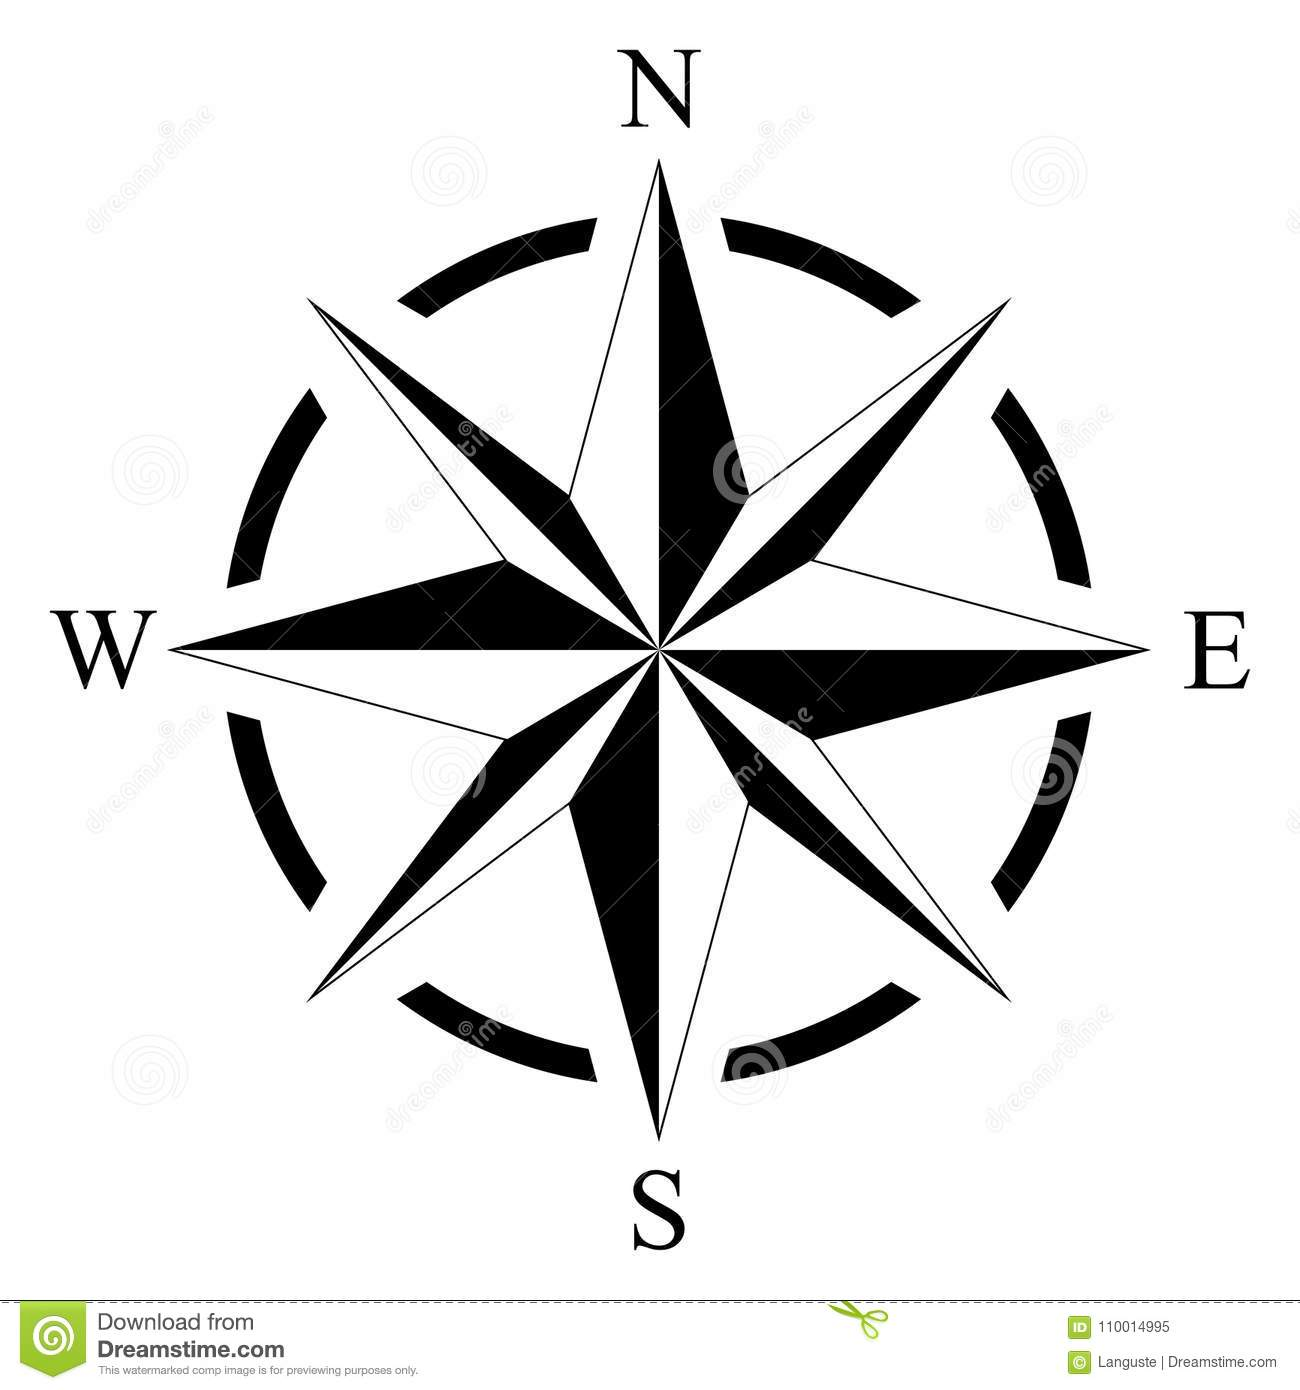 Picture of: Compass Rose For Marine Or Nautical Navigation And Maps On A Isolated White Background As Vector Stock Vector Illustration Of Magnetic Nautical 110014995